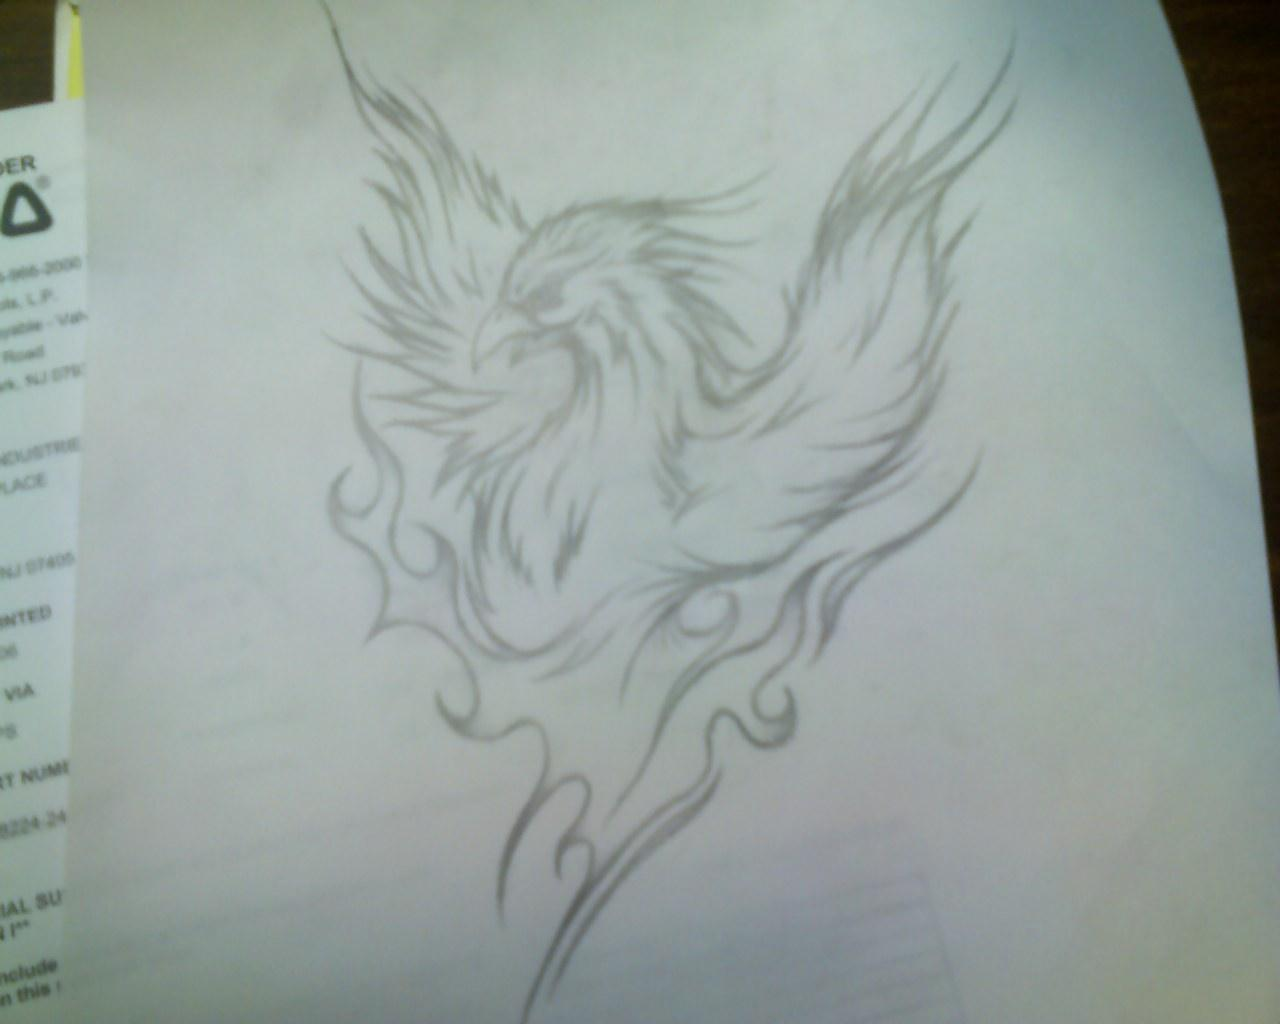 possibly new tattoo...opinions?